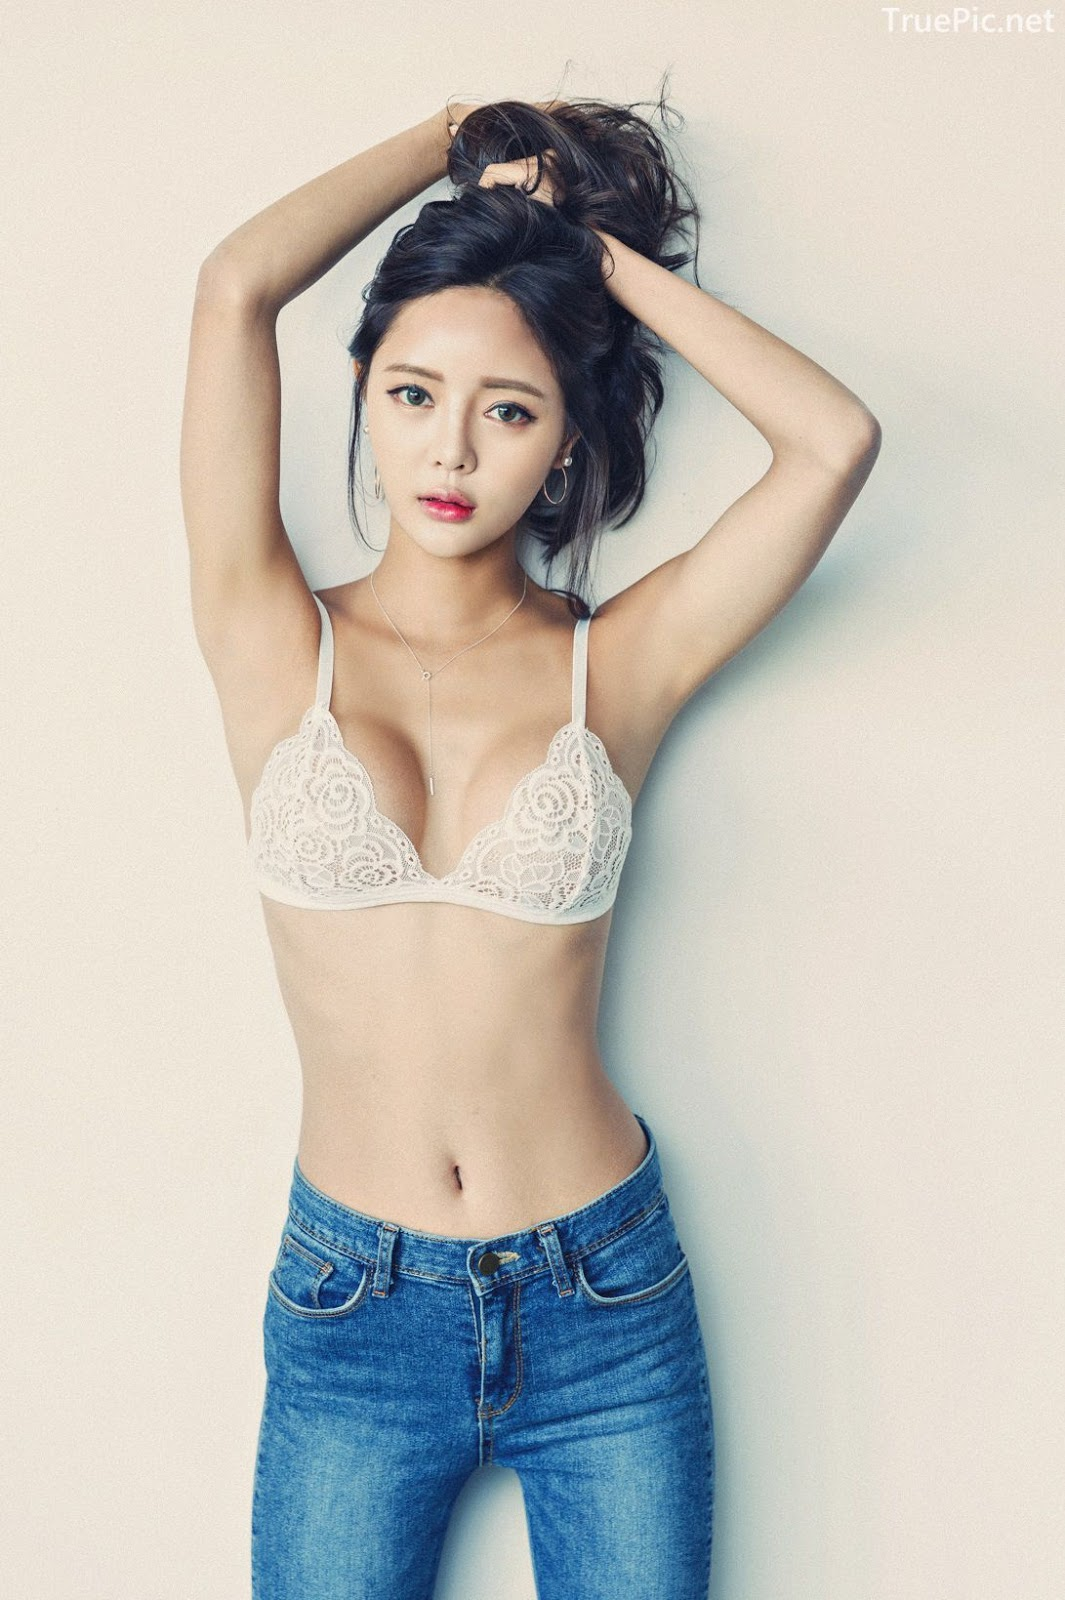 Korean Lingerie Queen - Kim Bo Ram - There's So Many Reason To Love You - TruePic.net- Picture 8